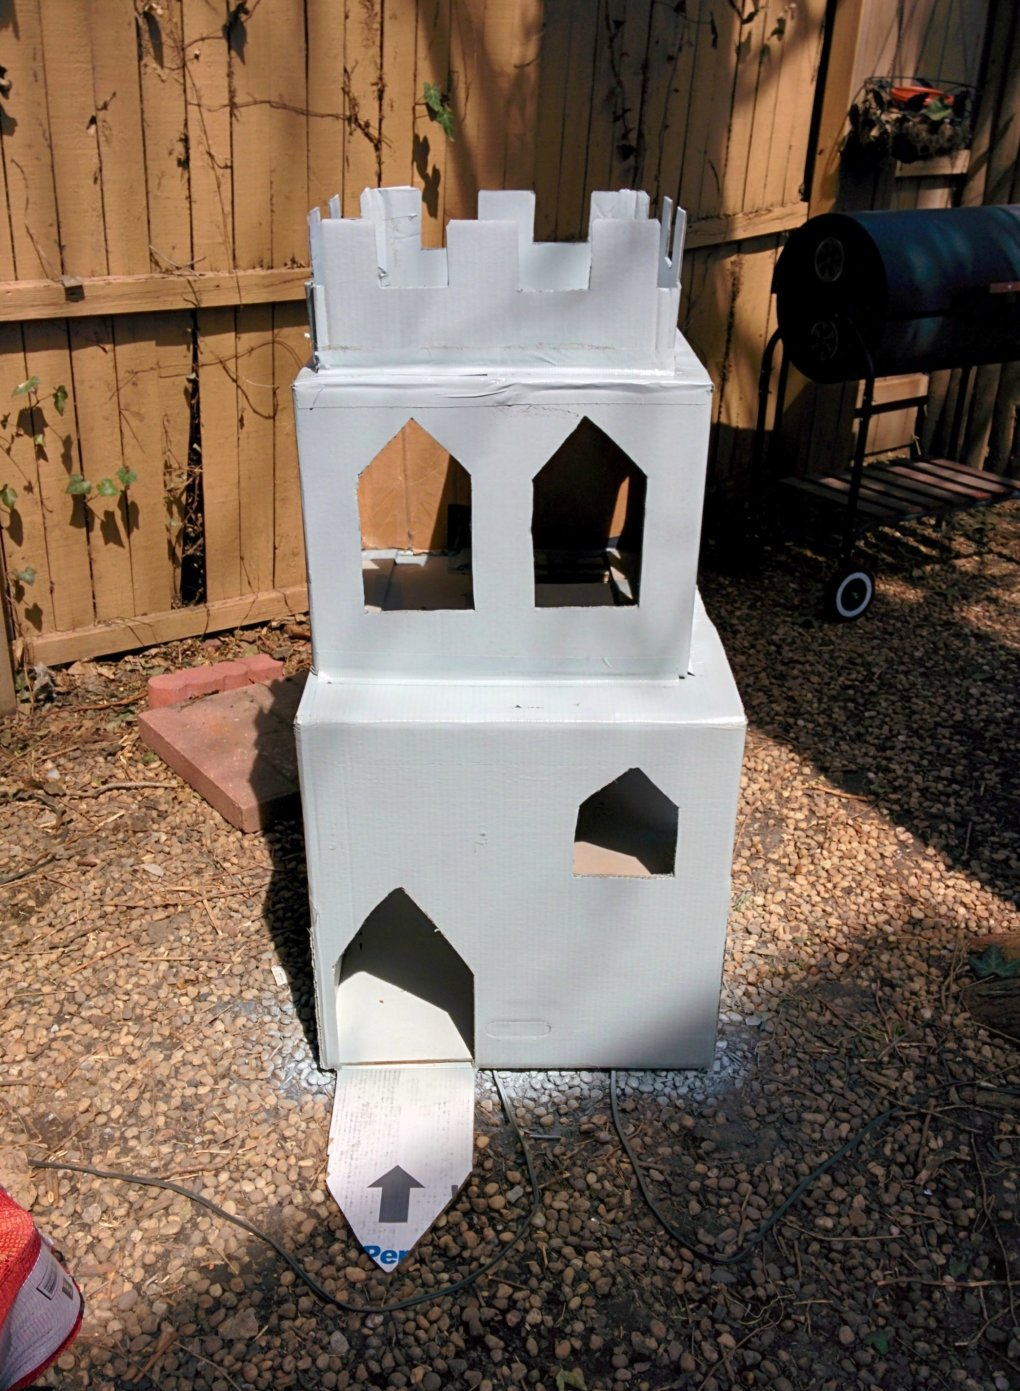 46jjwk9 - why don't we build cardboard castle to our cats? this is how to do it.